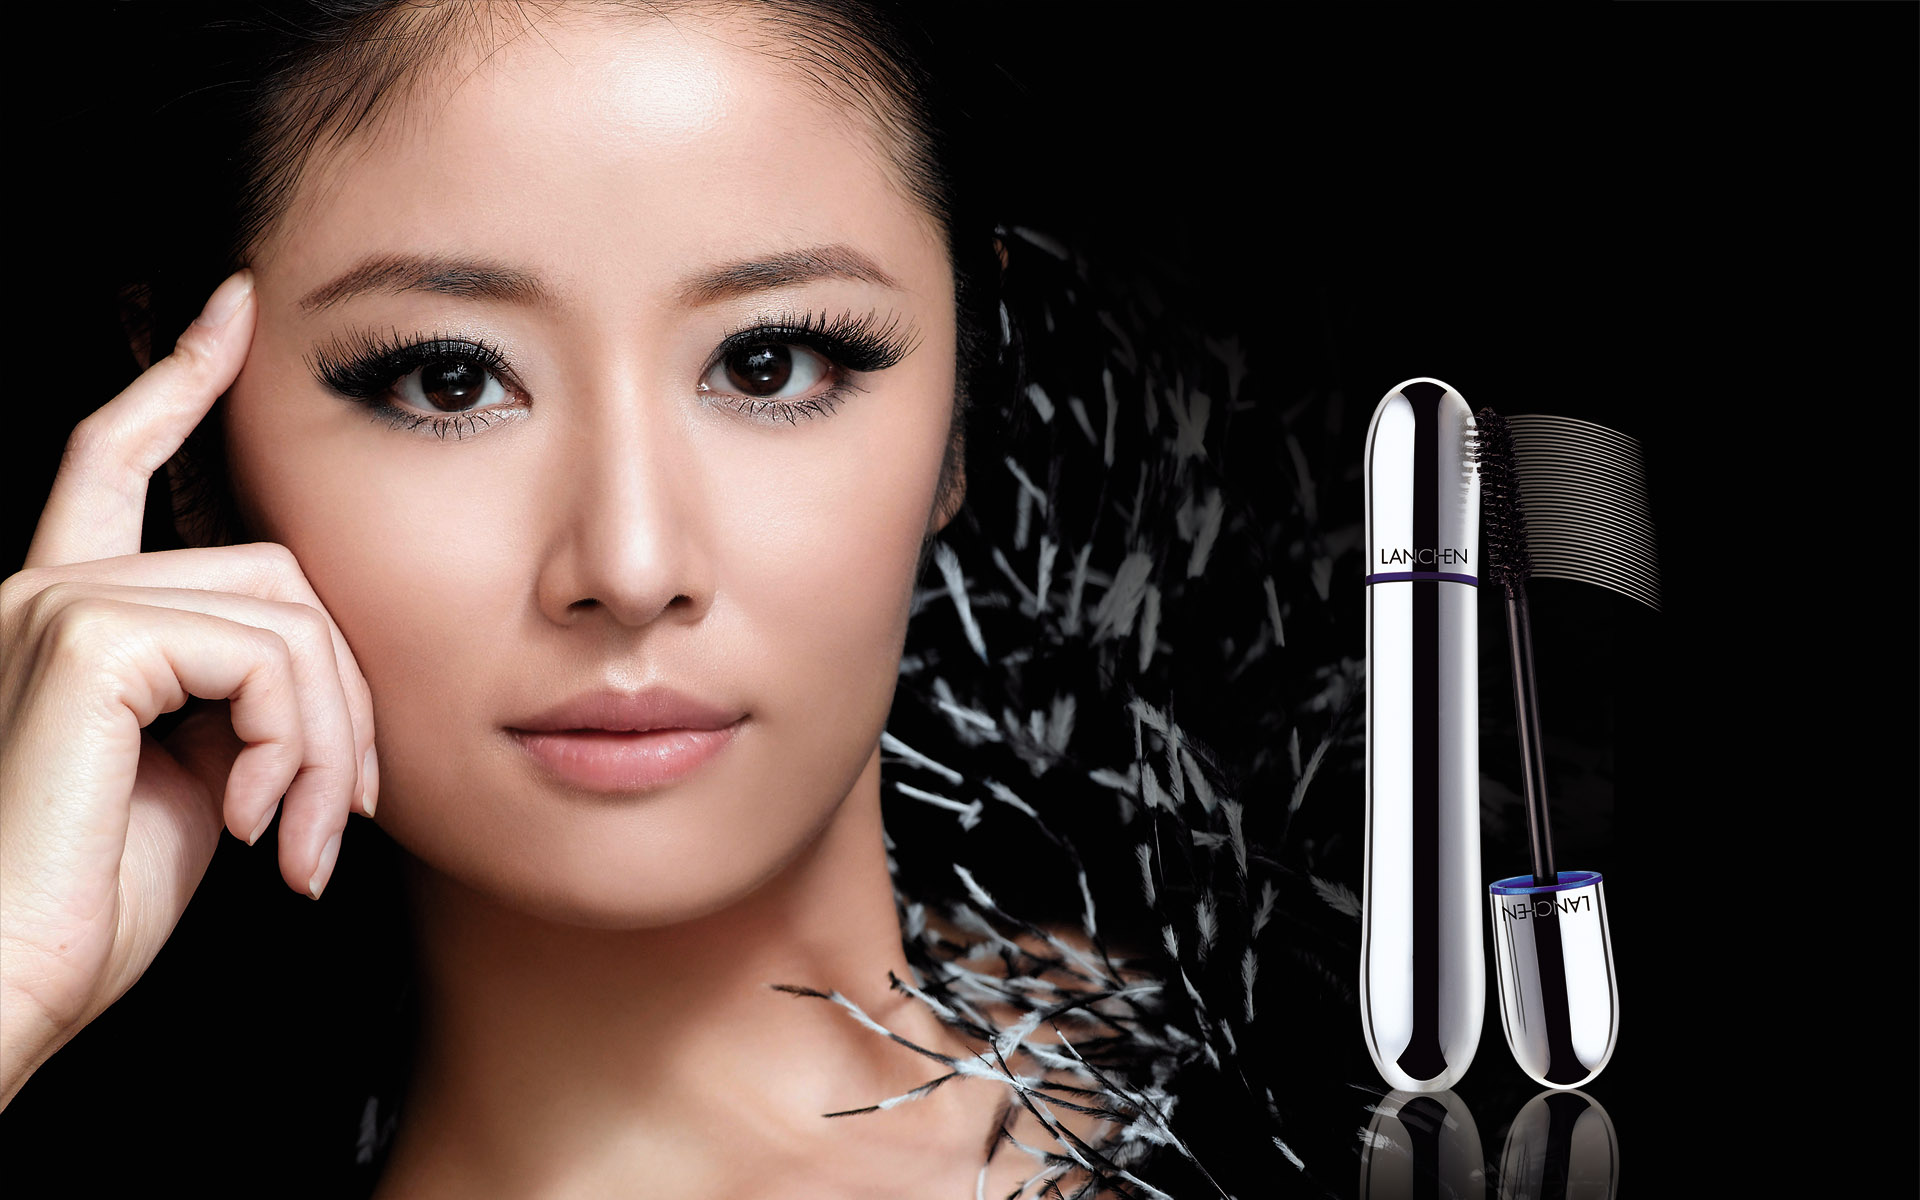 HD cosmetics ads wallpaper 1010